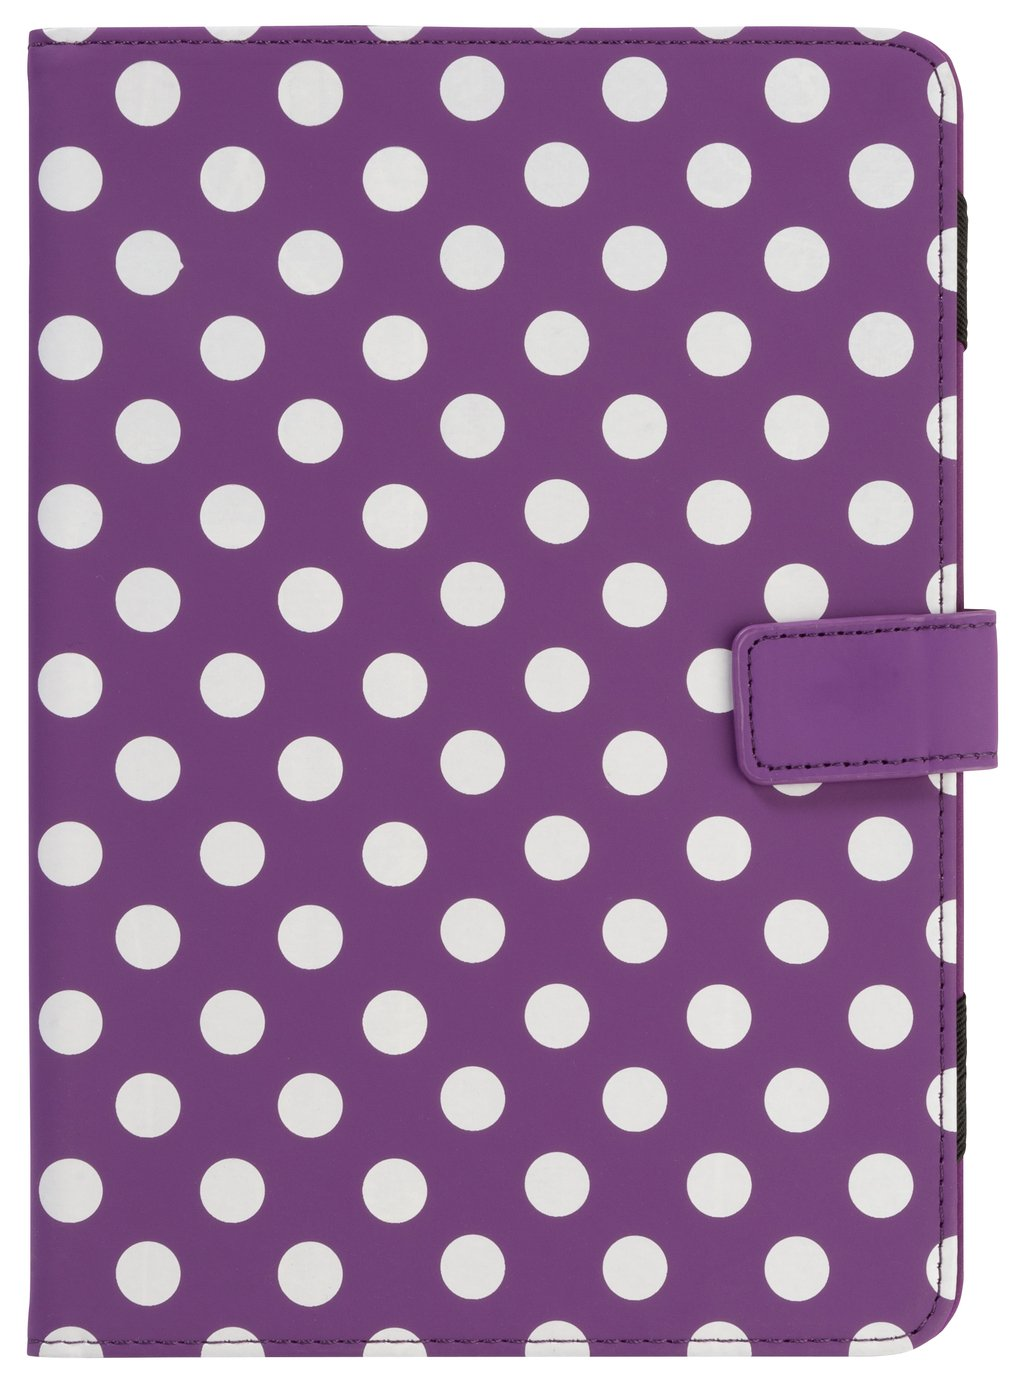 Universal - 7/8 Inch Polka Dot PVC Tablet Case - Purple from Universal